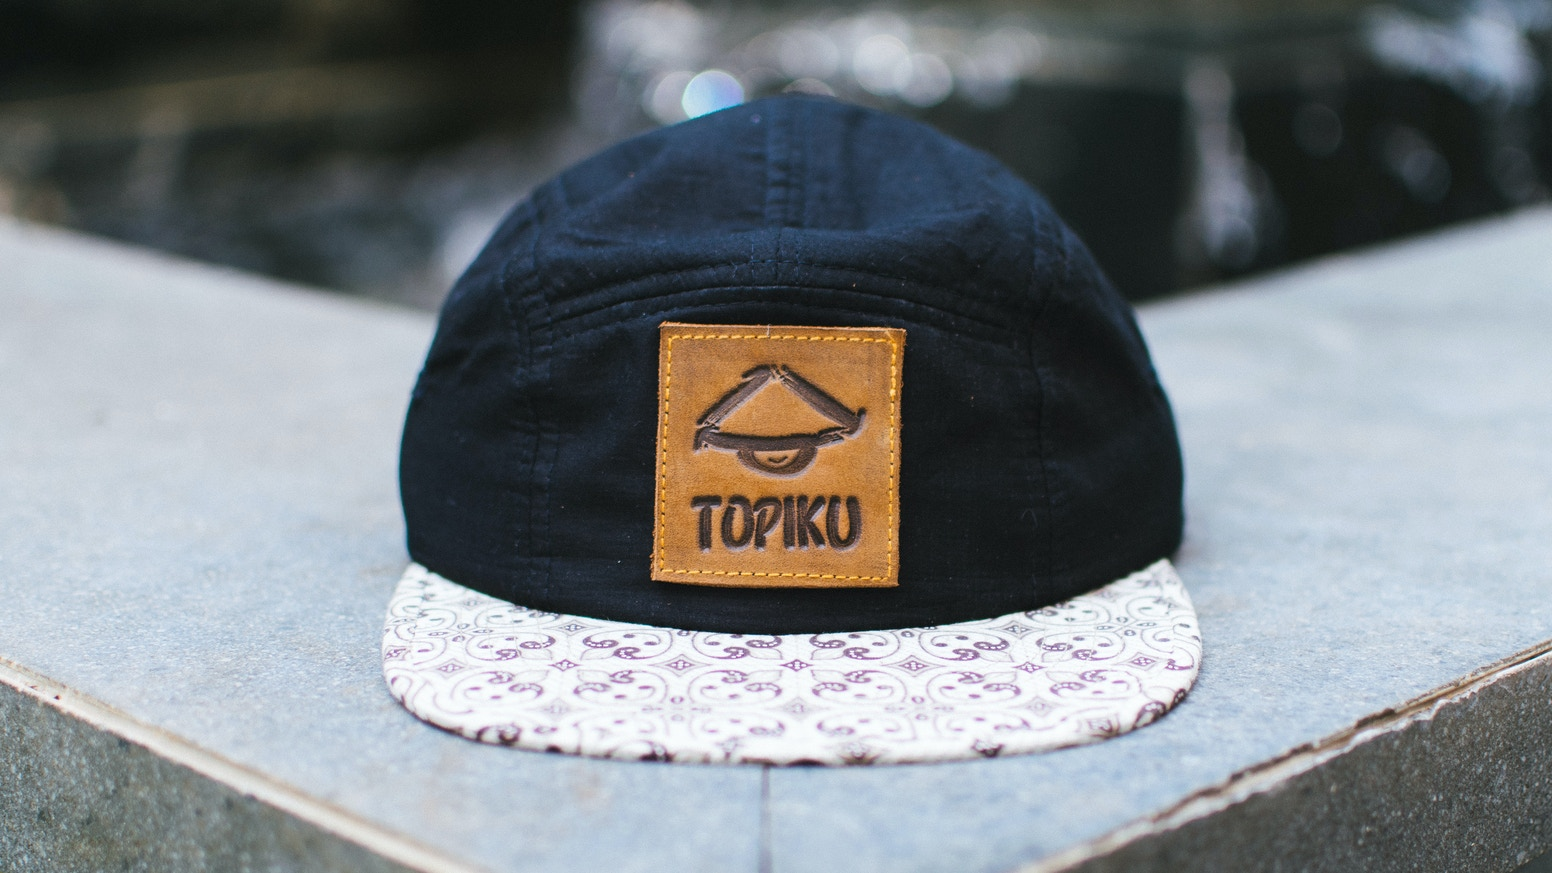 One-of-a-kind snapback hats handcrafted from up-cycled materials in Indonesia.